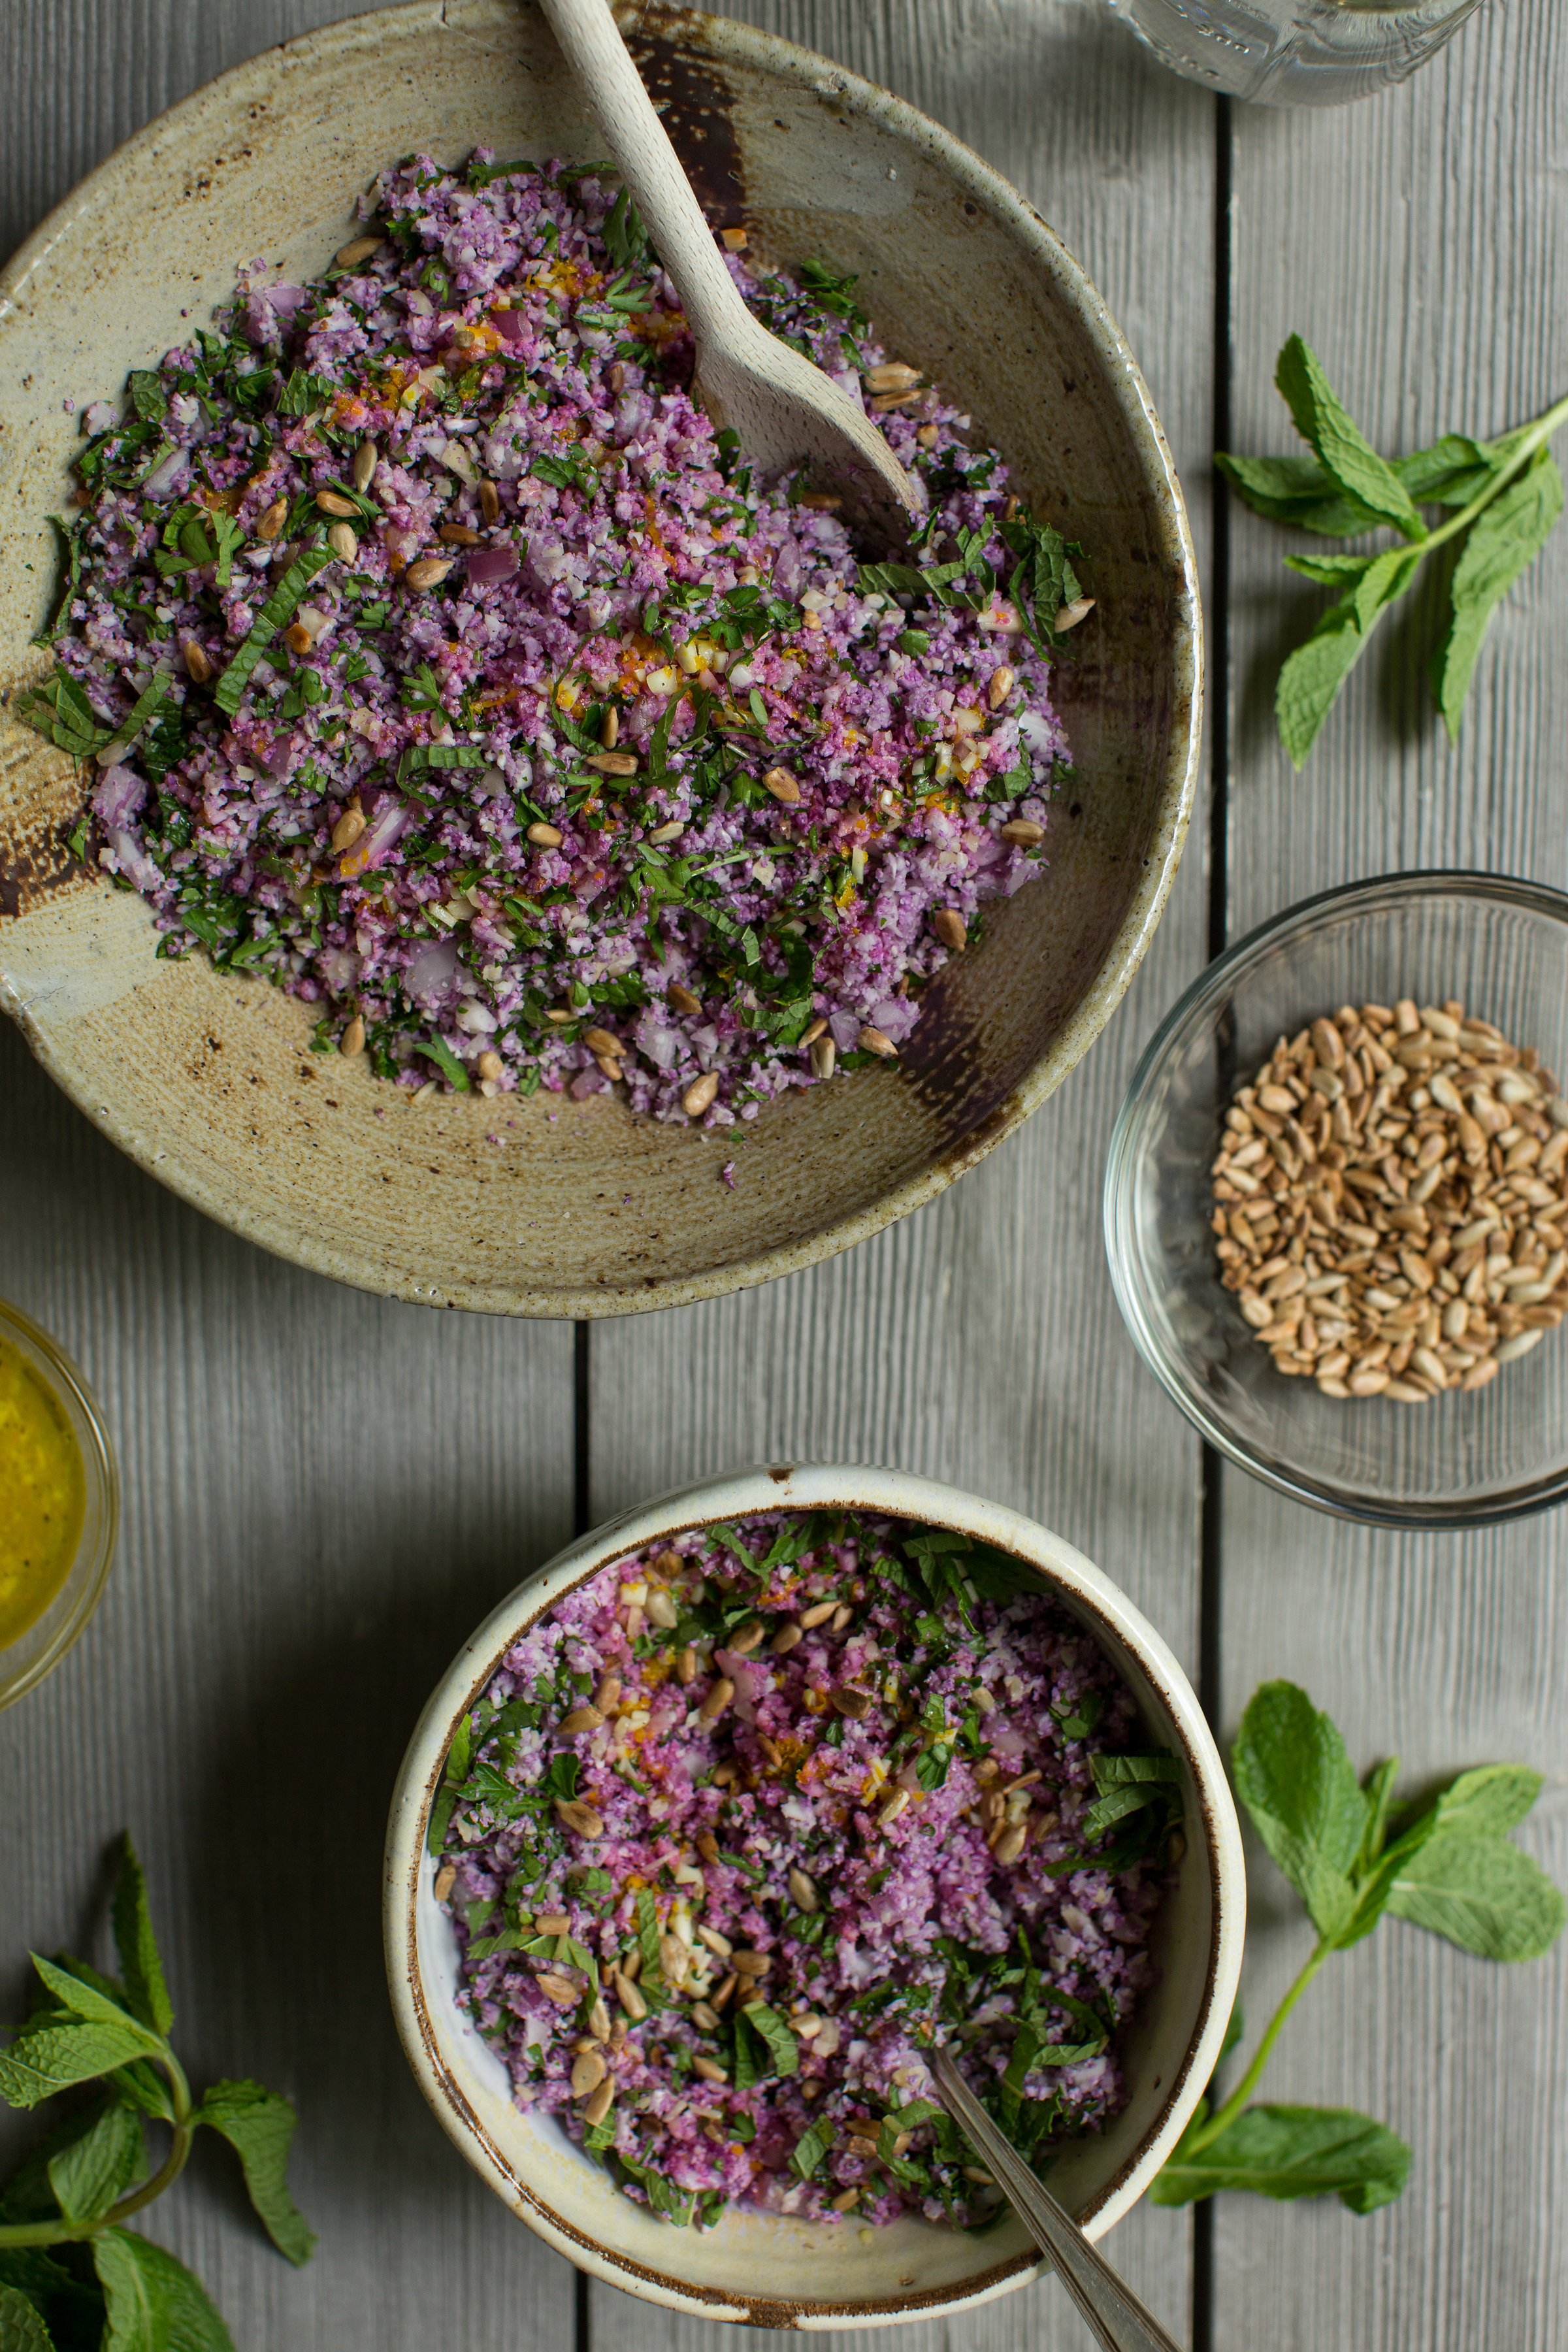 The perfect dish for a potluck or a picnic as it can be served cool or at room temperature. Purple Cauliflower Tabbouleh is a great vegetarian recipe. Find more recipes like this on CTEatsOut.com